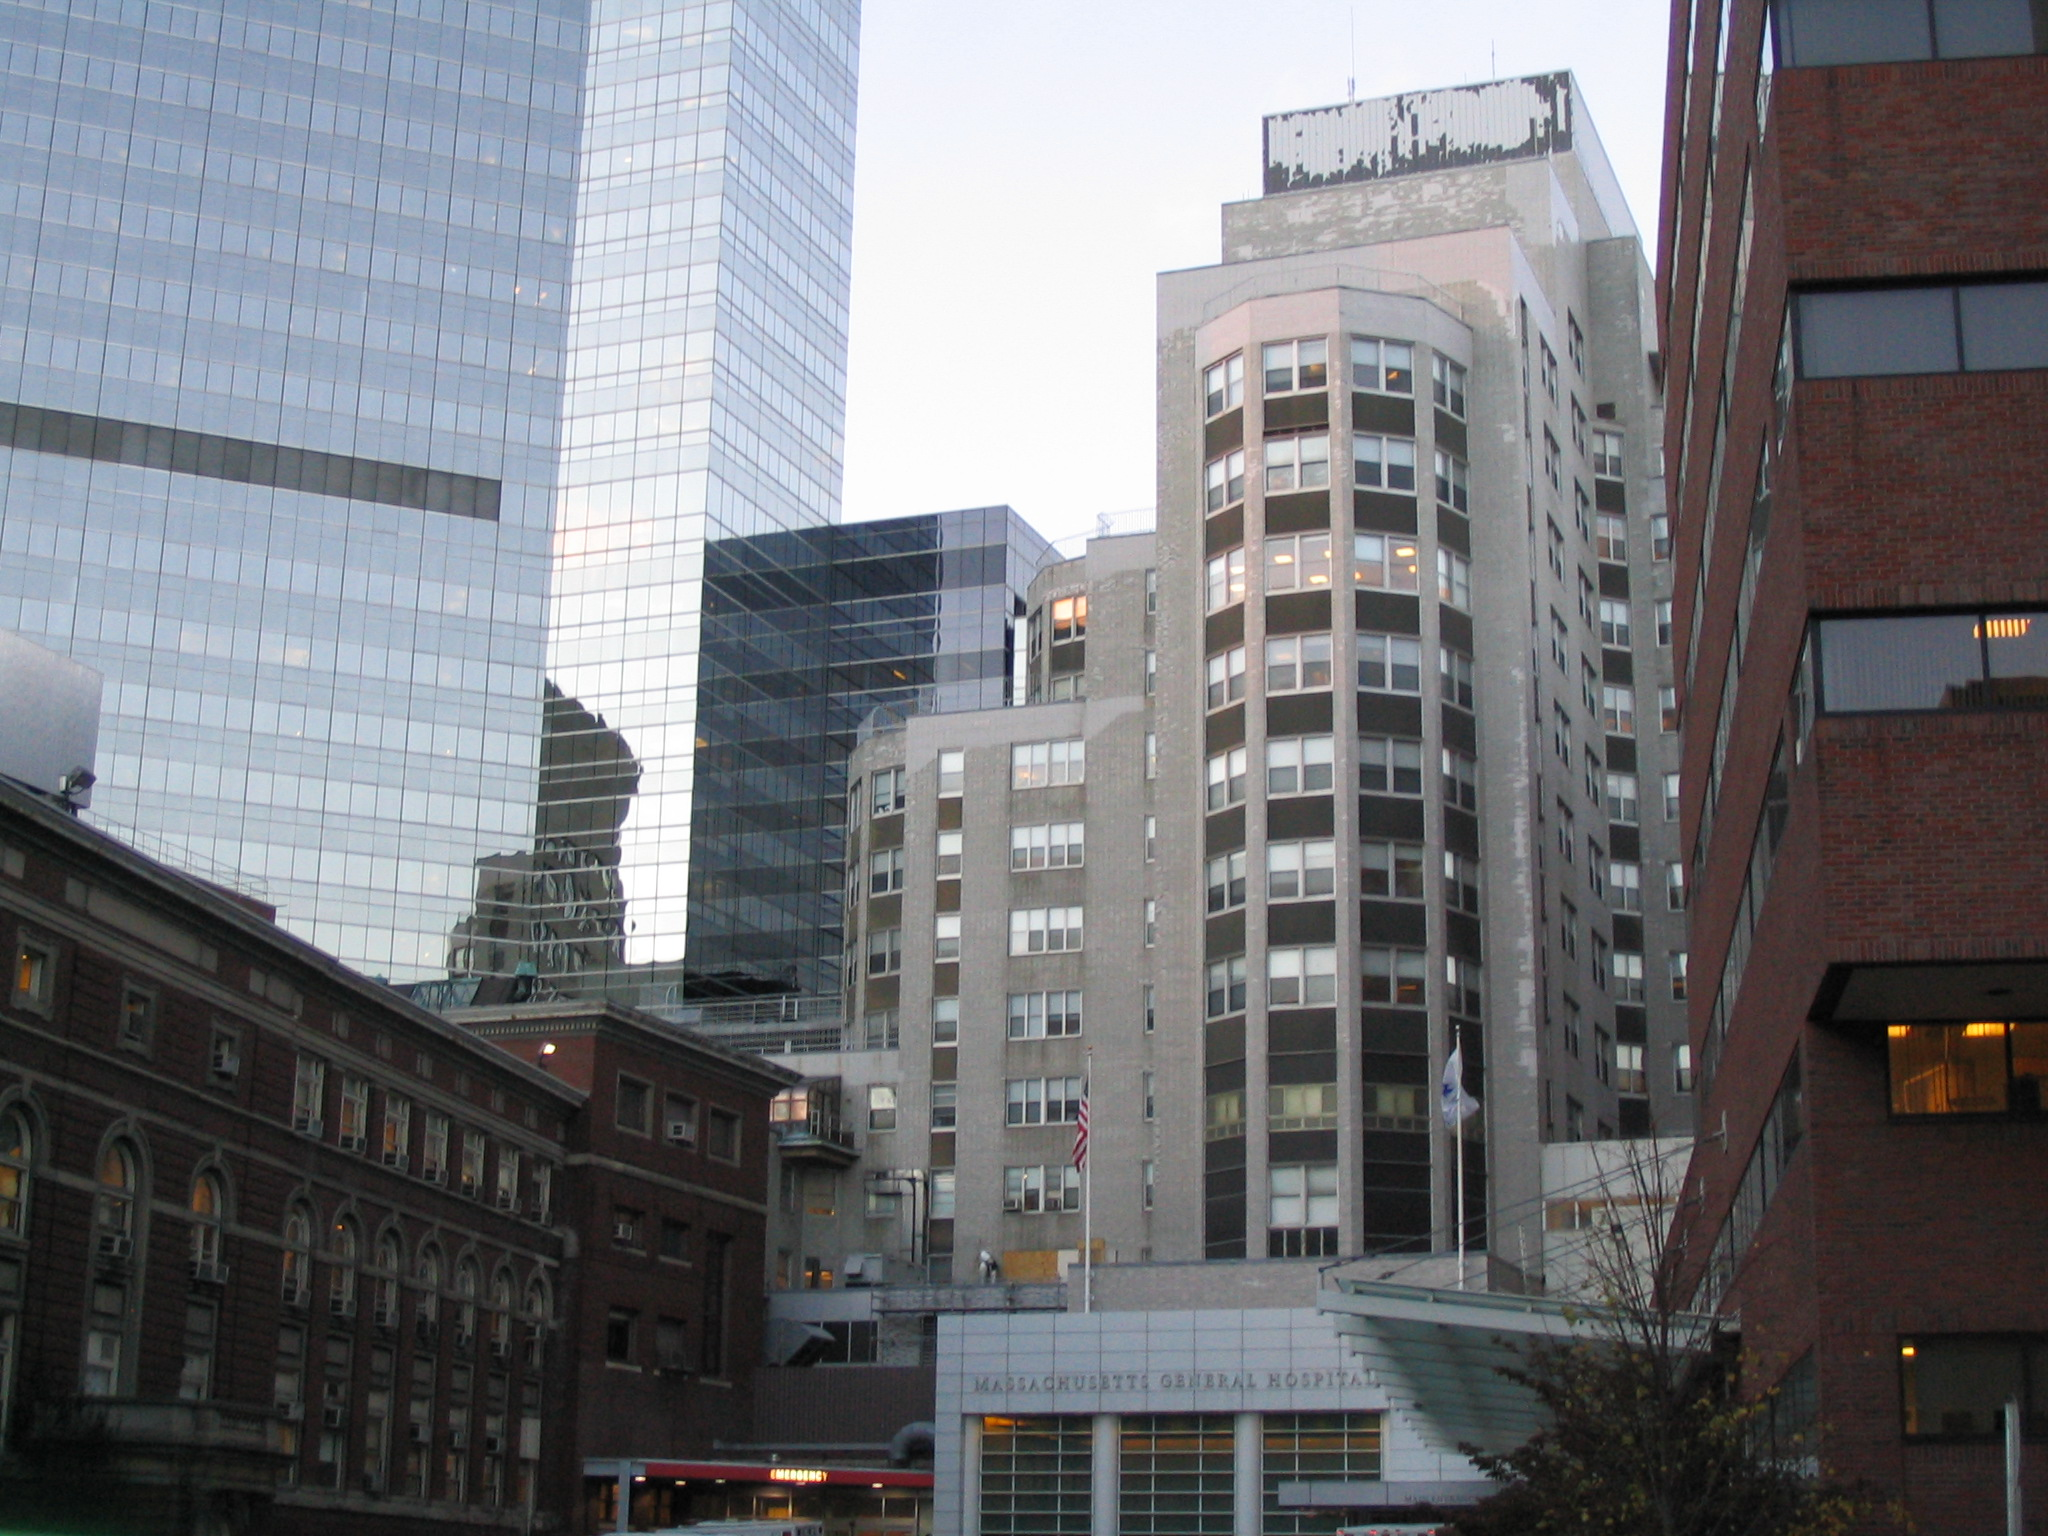 A photo of Massachusetts General Hospital